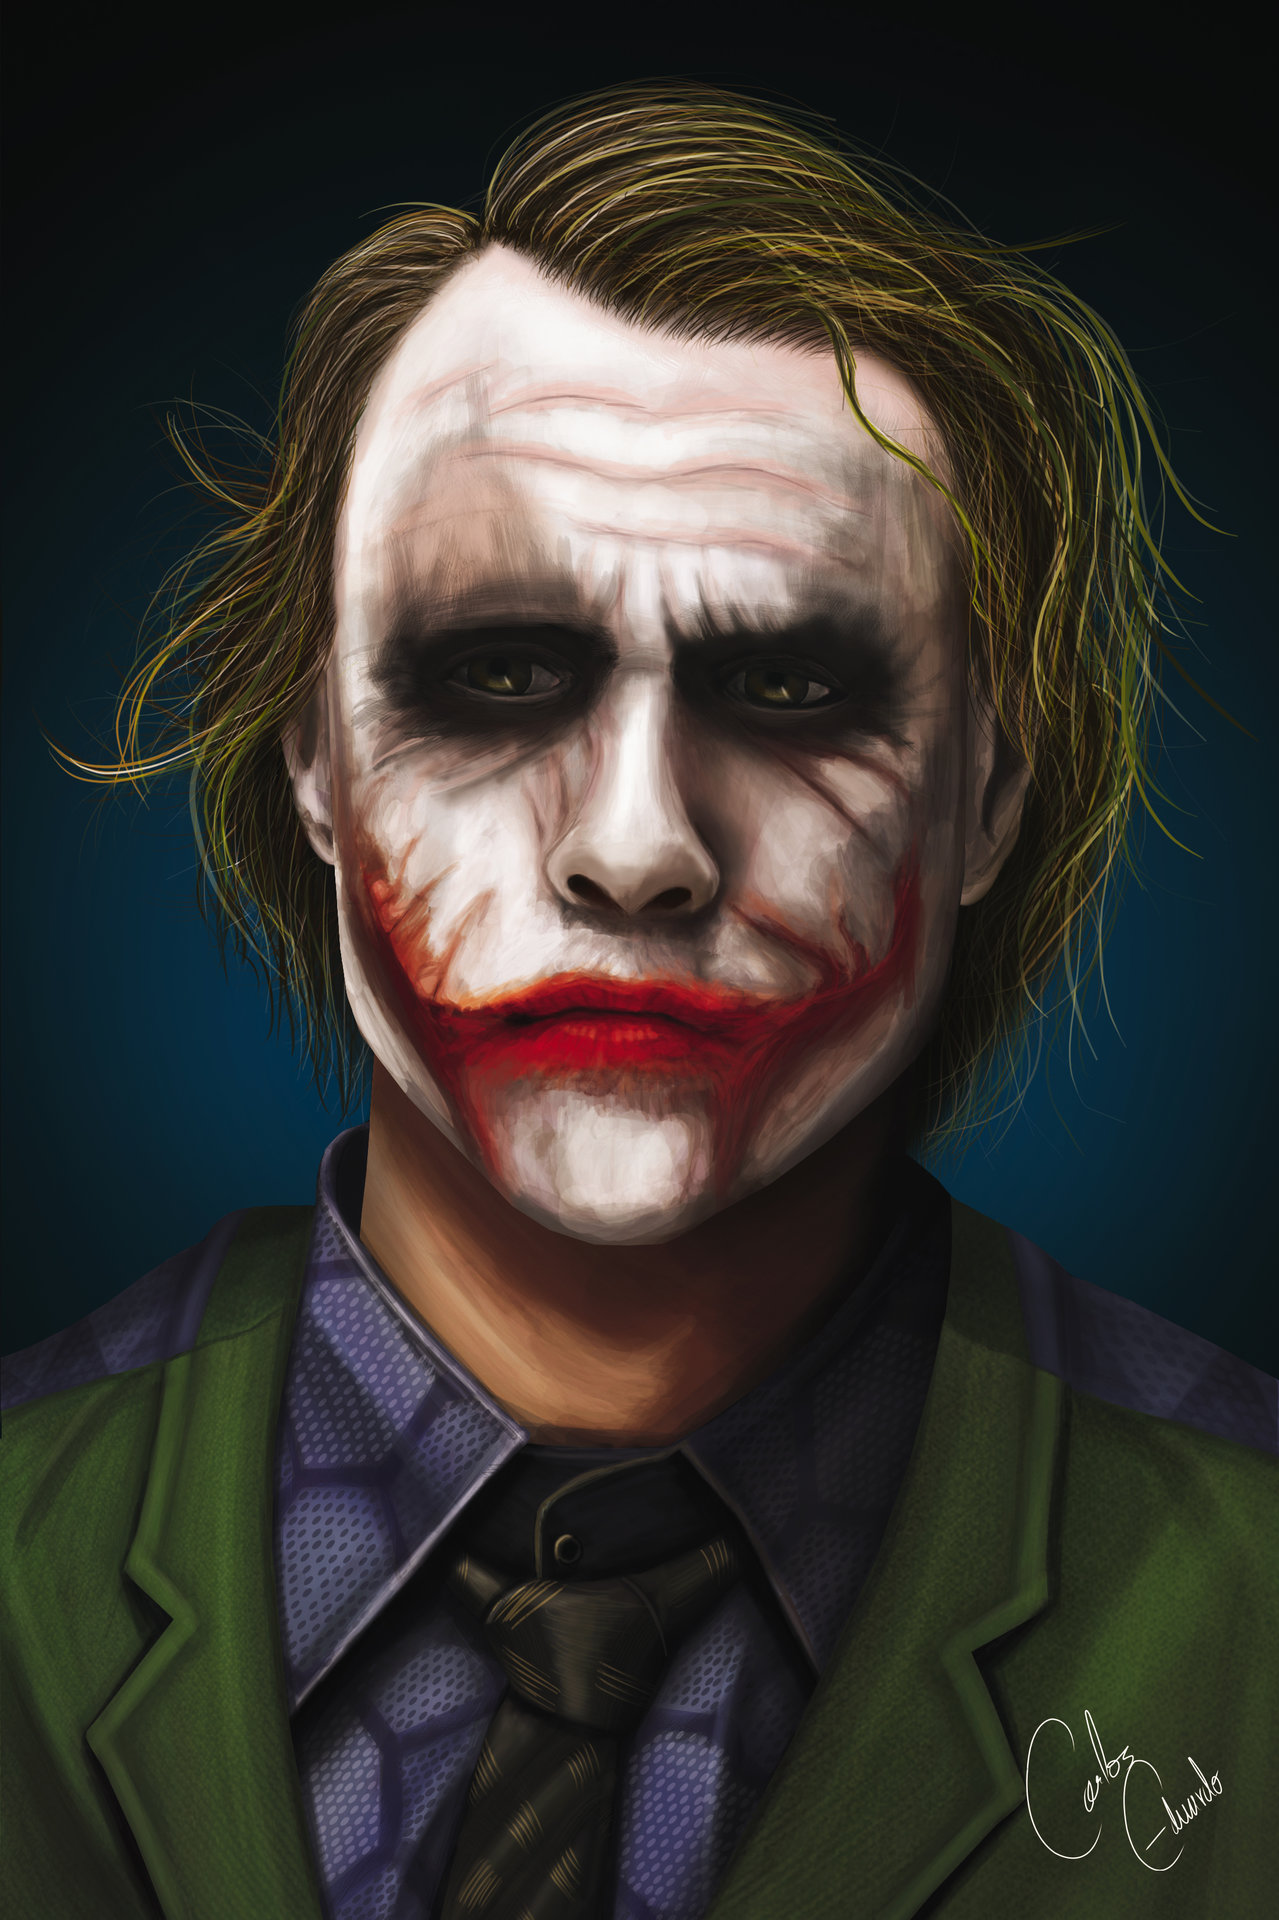 Artstation - Joker Heath Ledger Link Cars